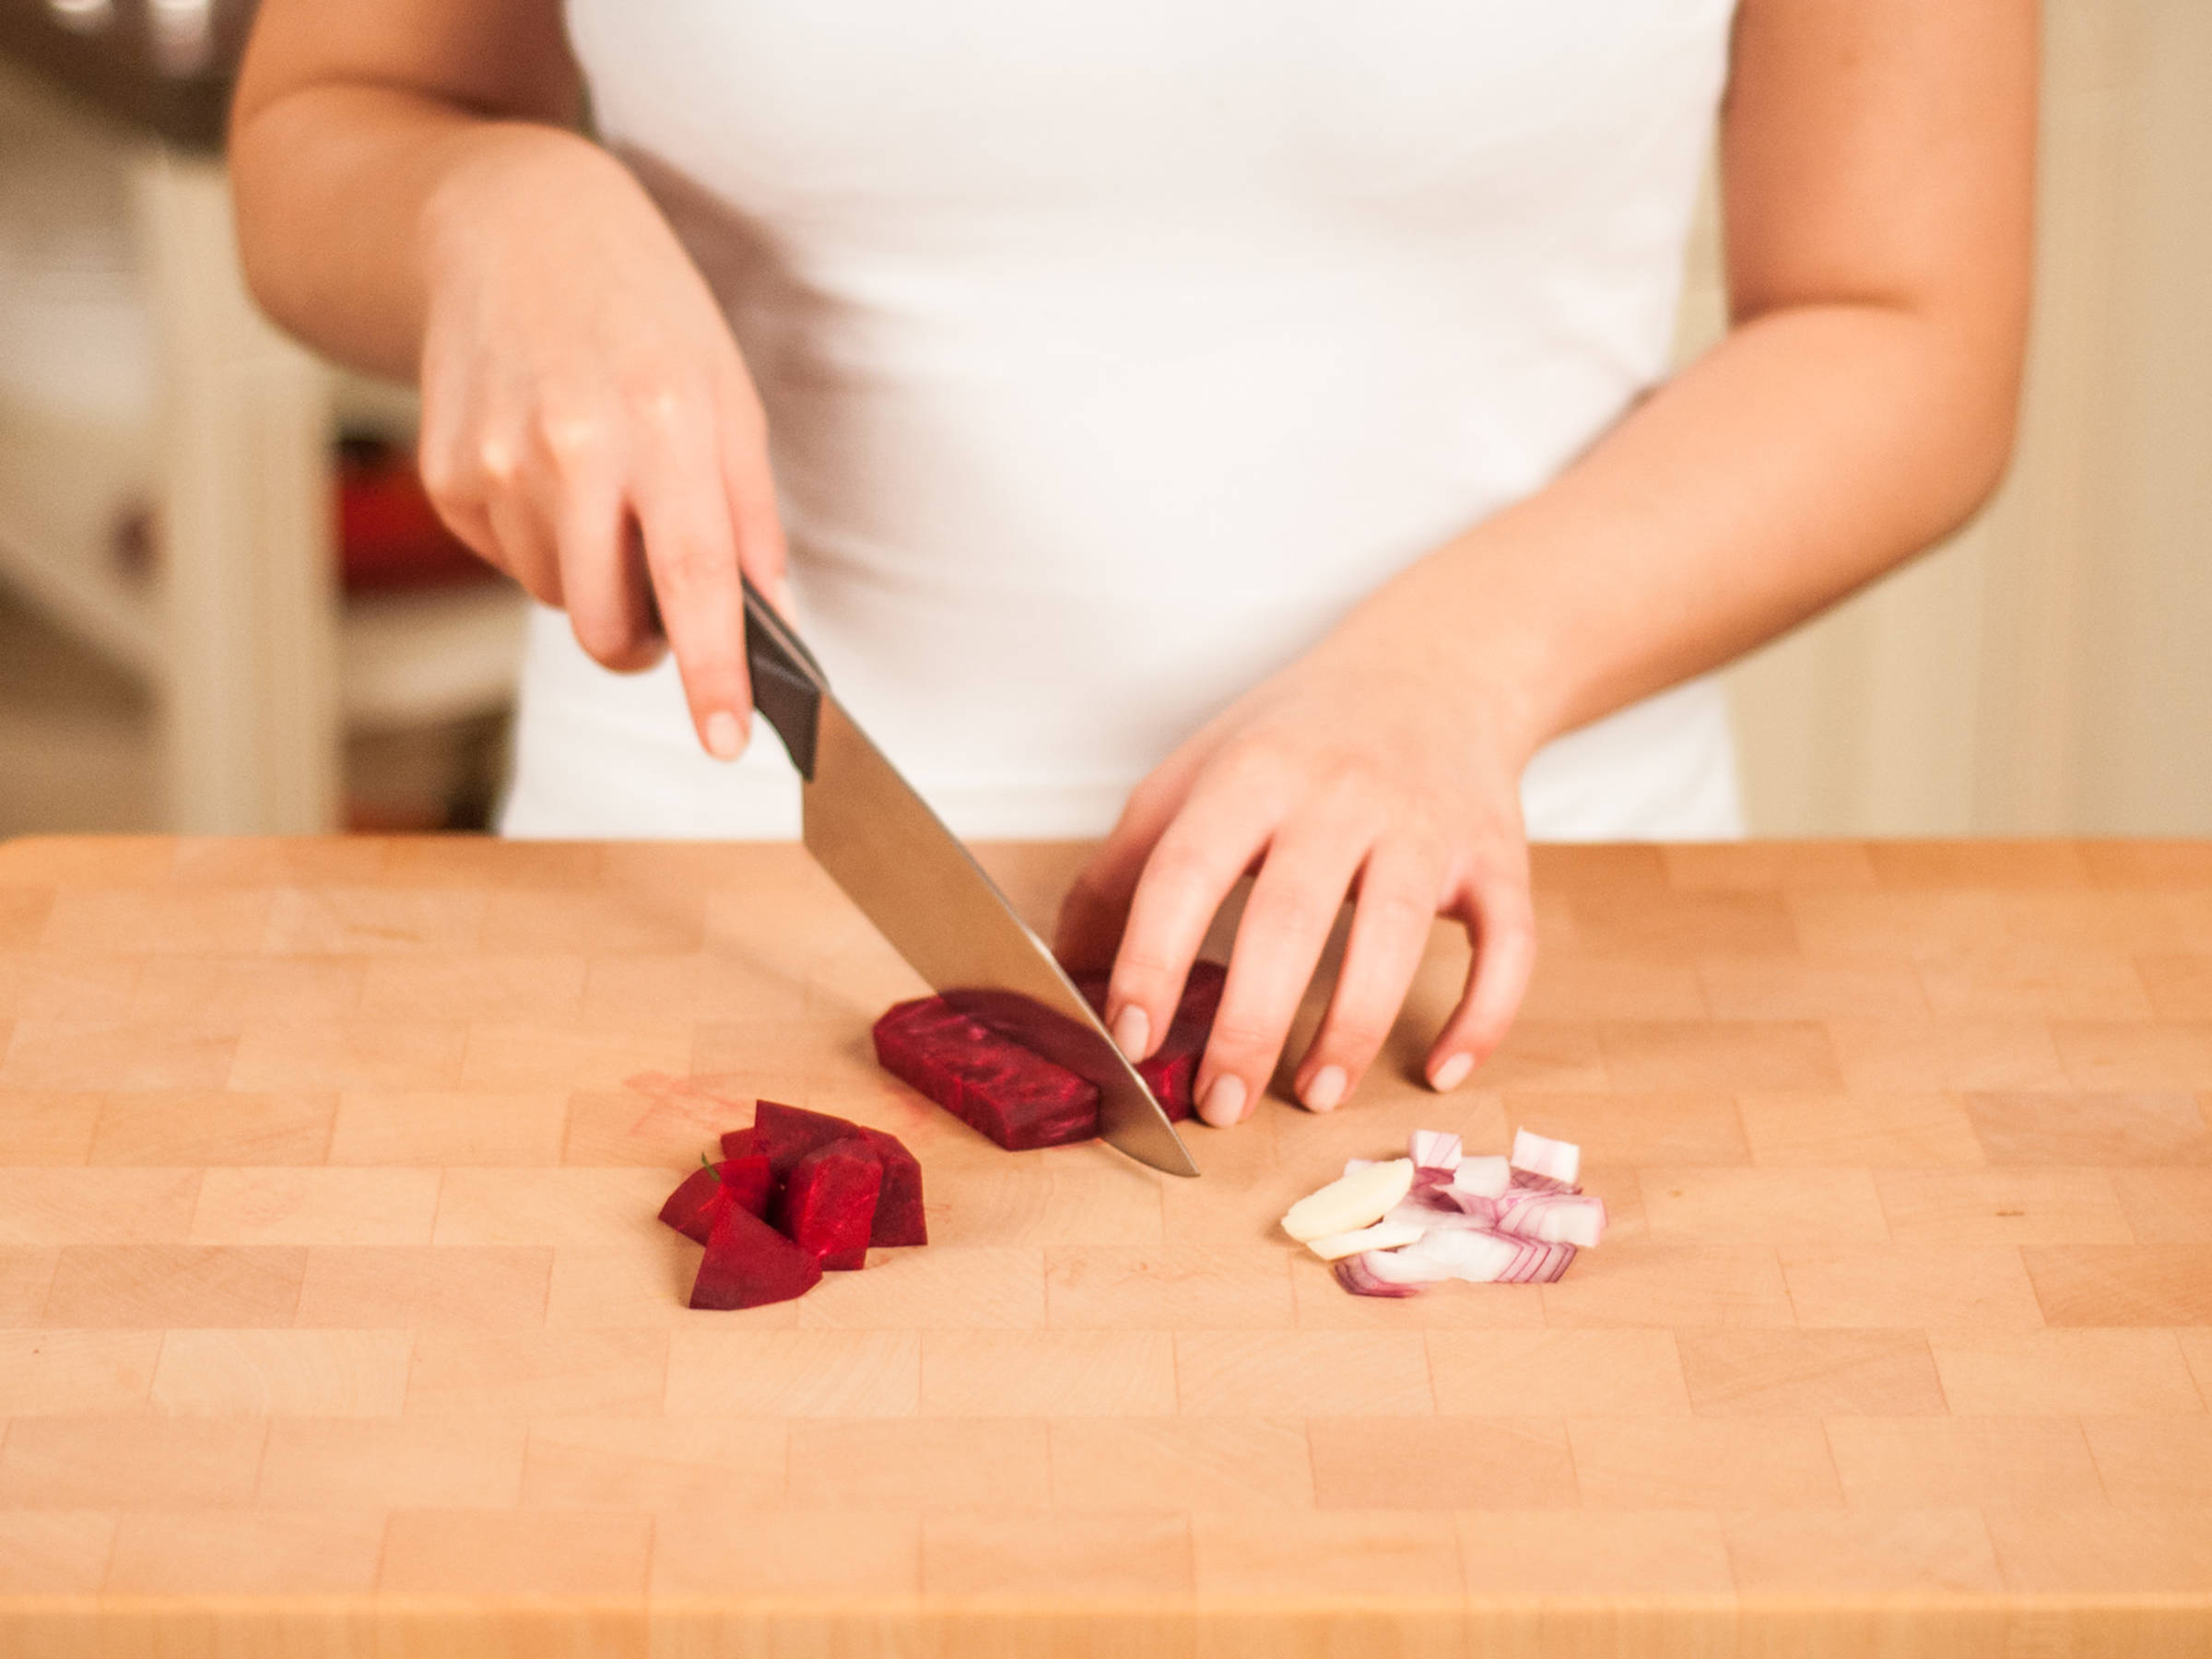 Dice onion and finely chop garlic. Peel beets and cut into large cubes.